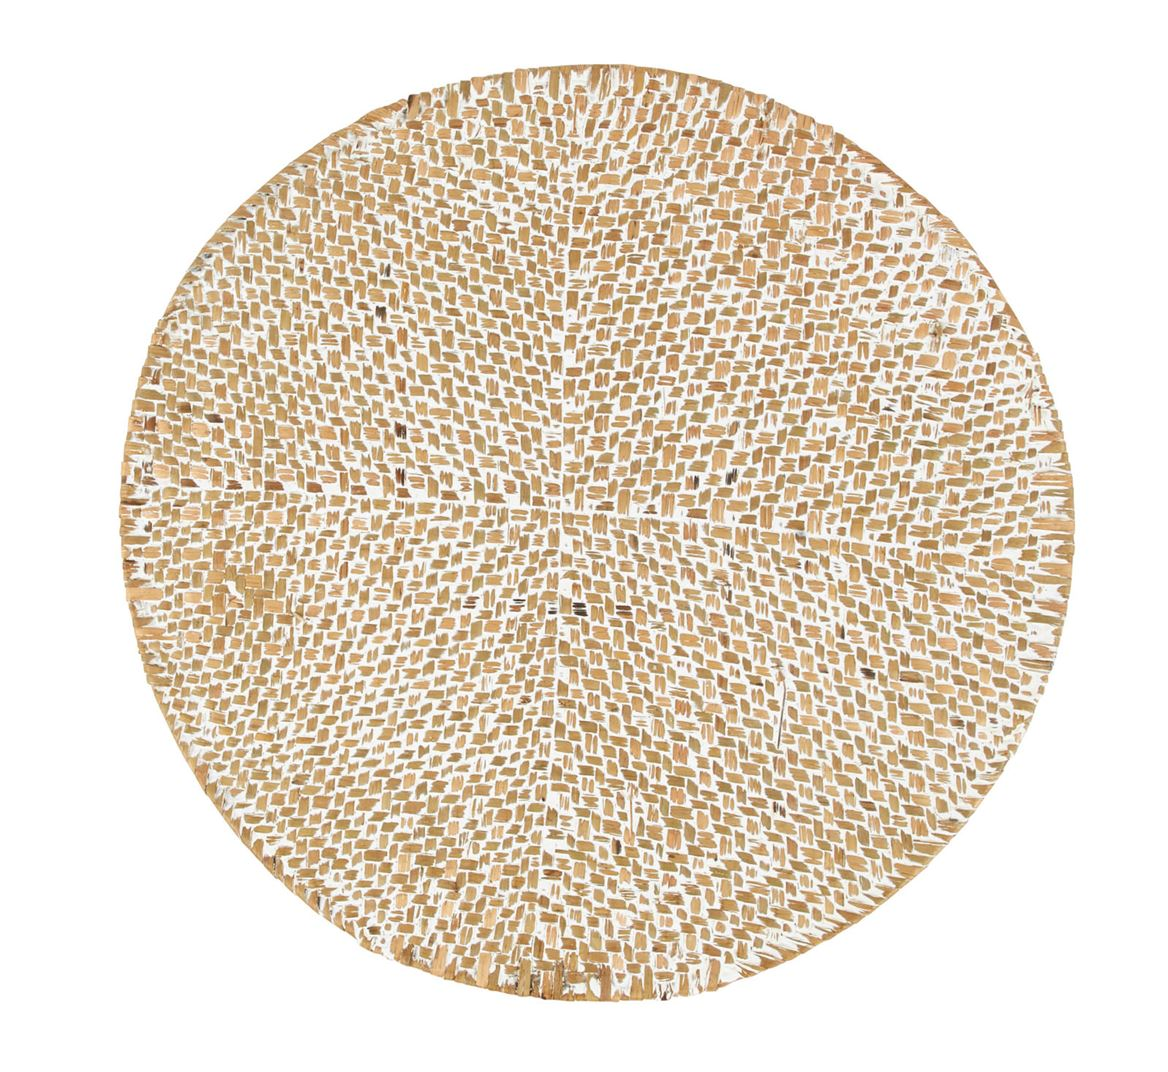 SEAGRASS Placemat naturel Ø 38 cm_seagrass-placemat-naturel-ø-38-cm